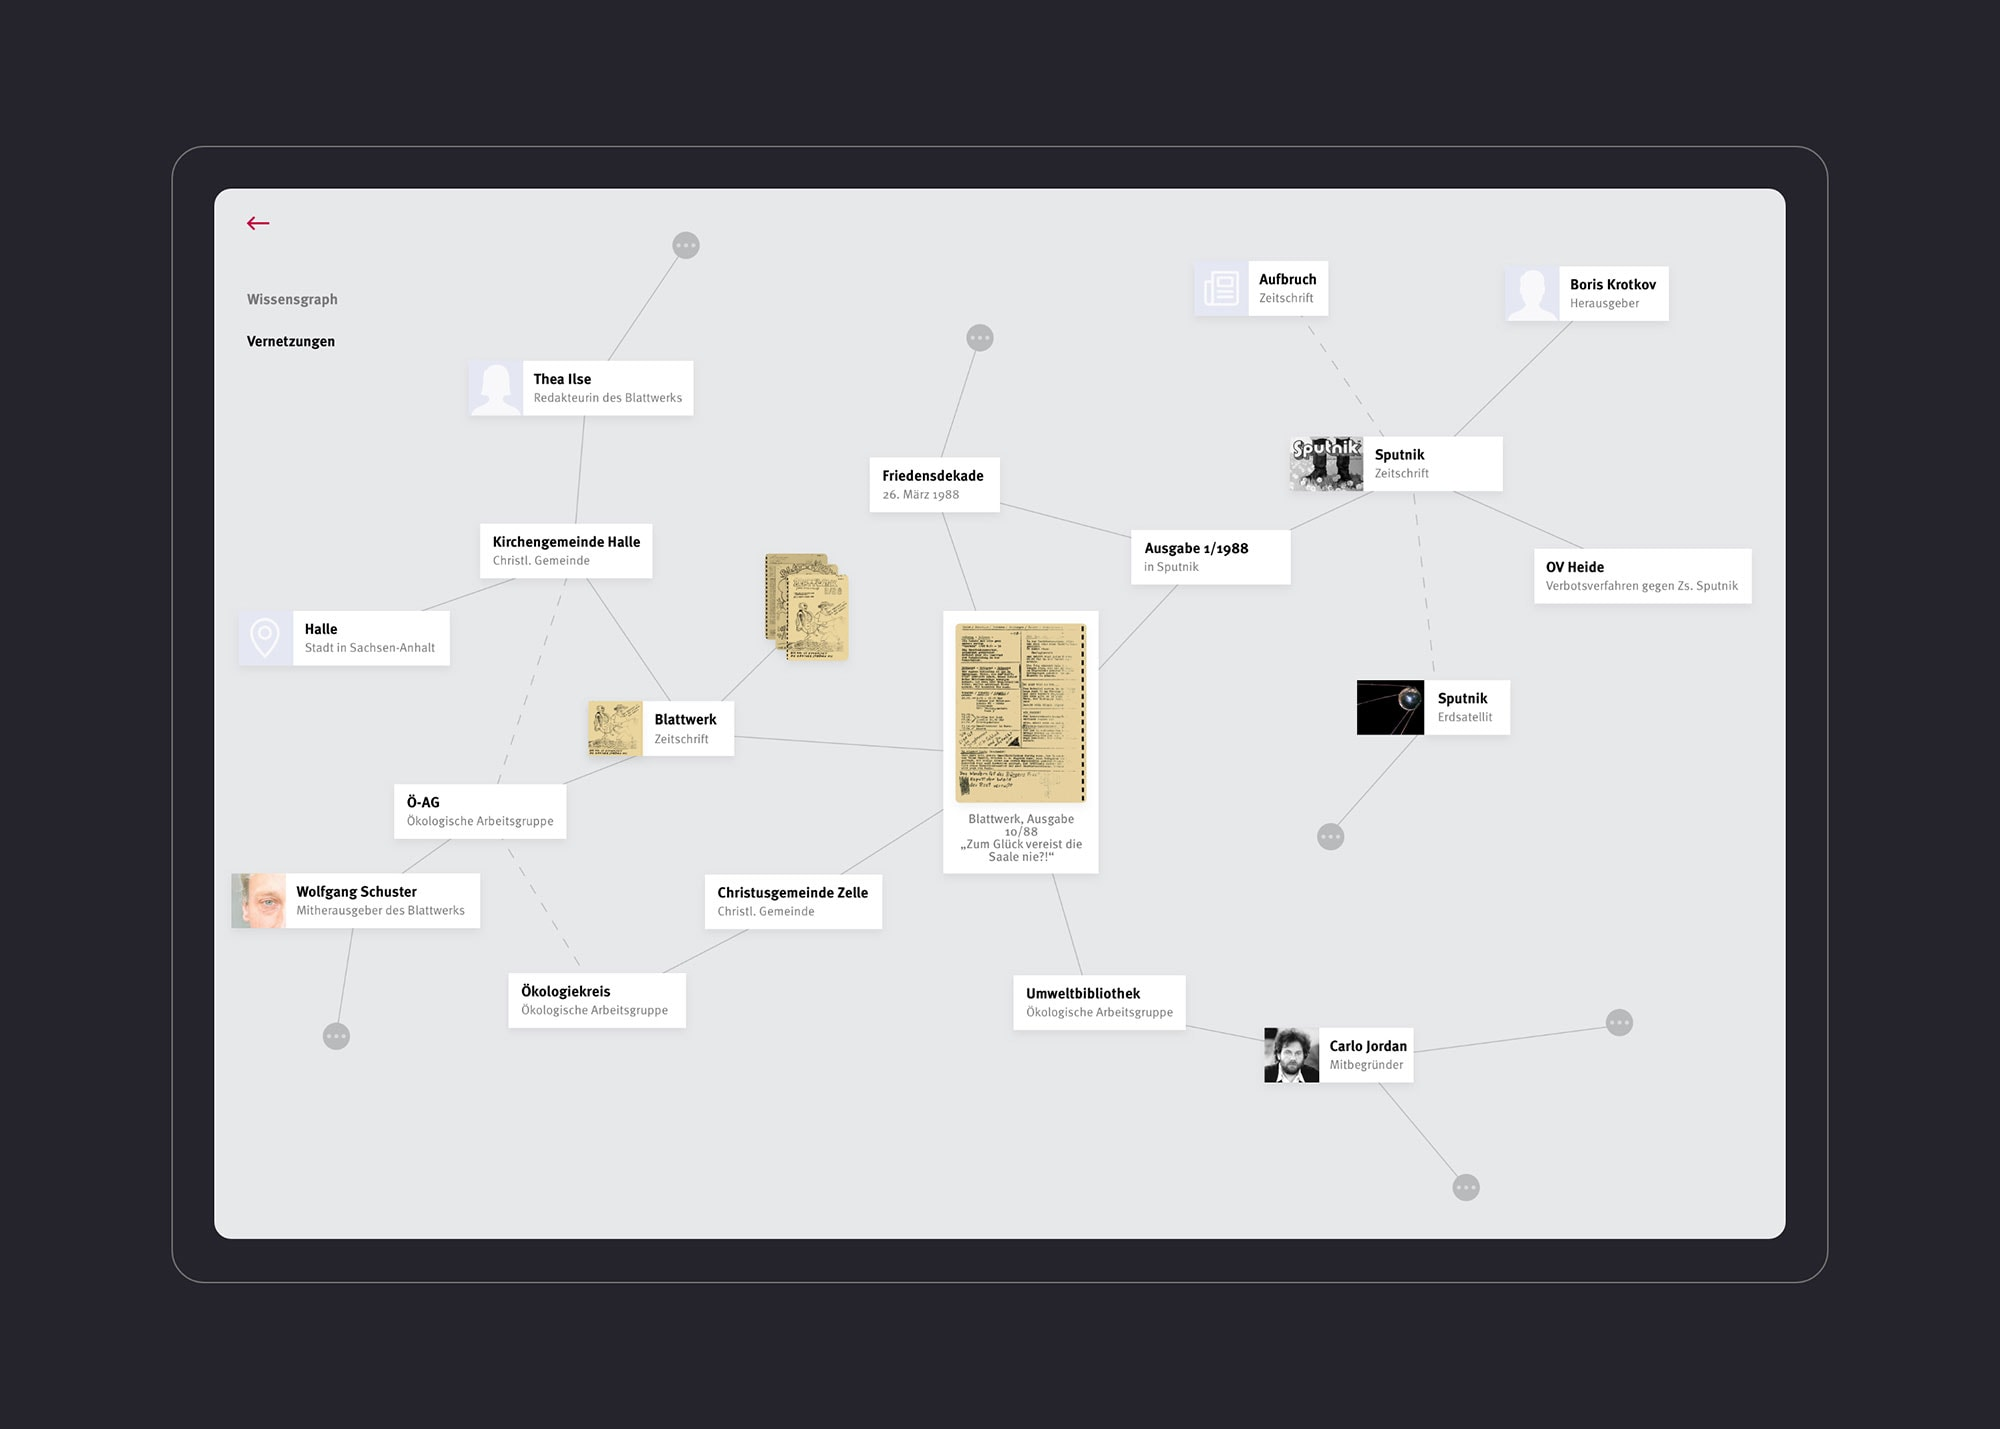 Big data visualization of Stasi knowledge graph